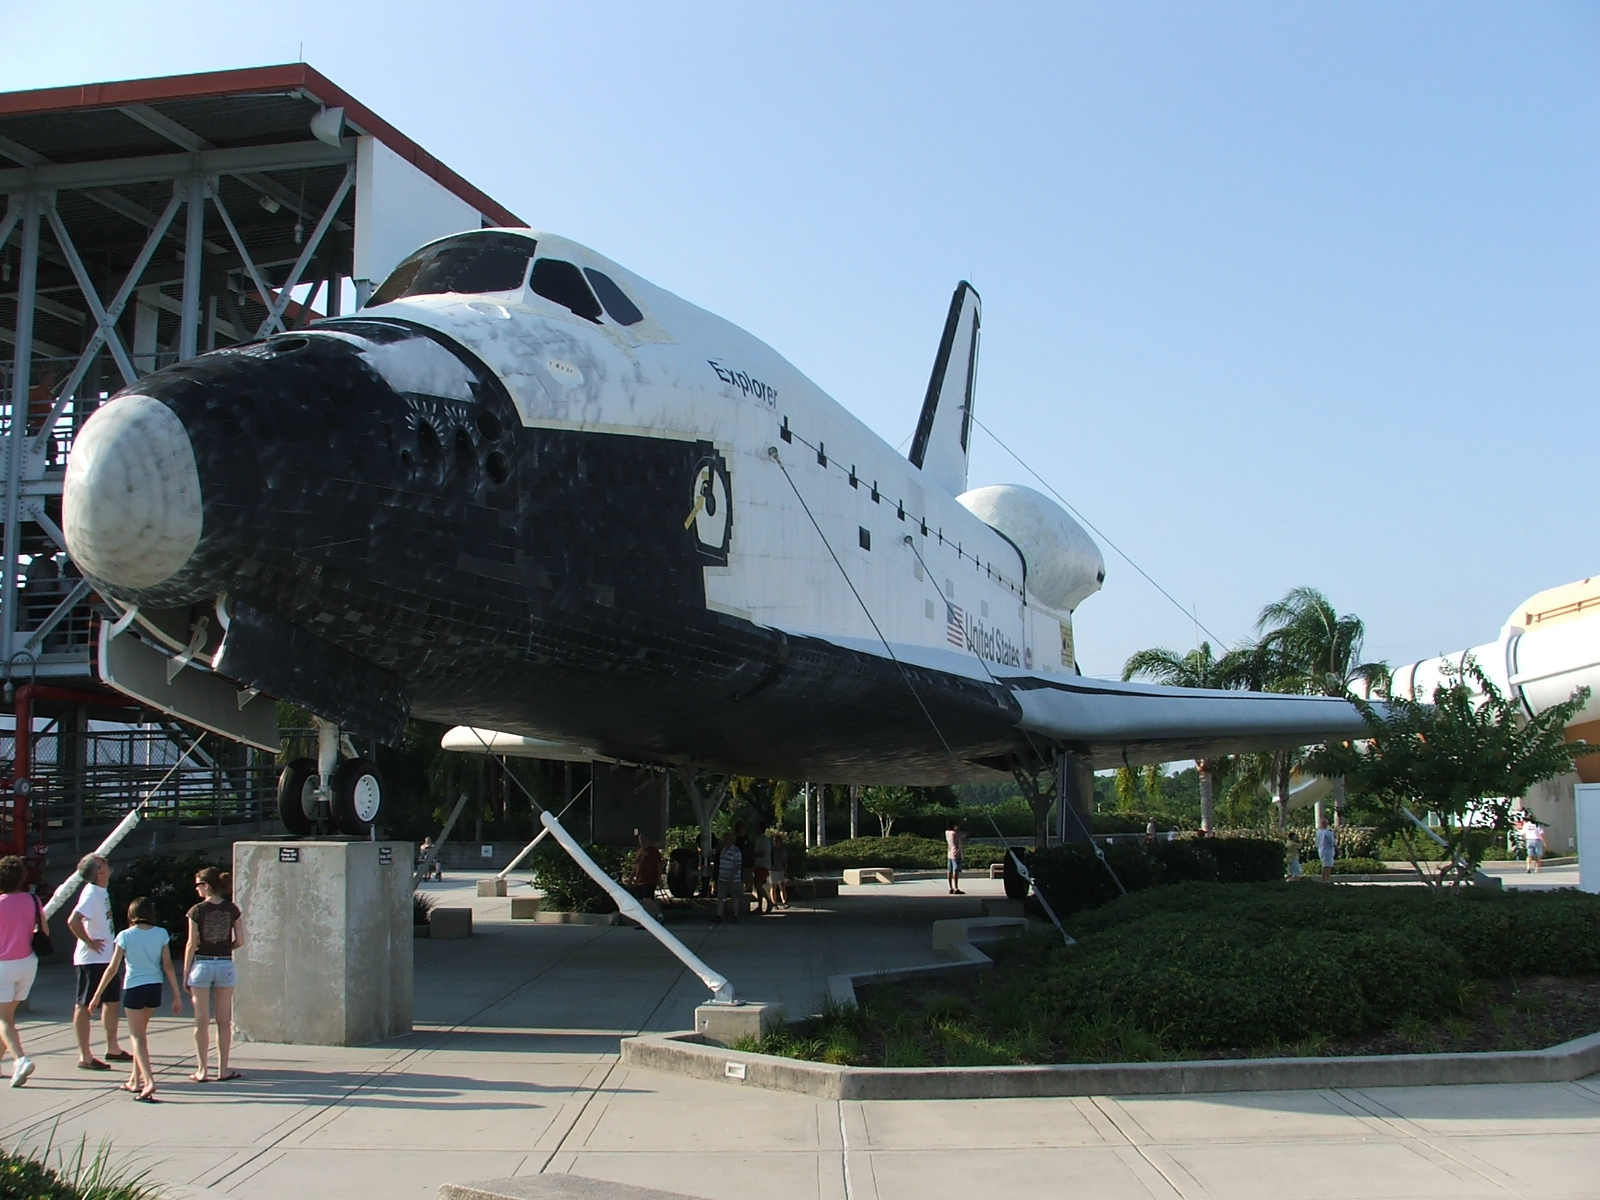 space shuttle explorer is real - photo #5